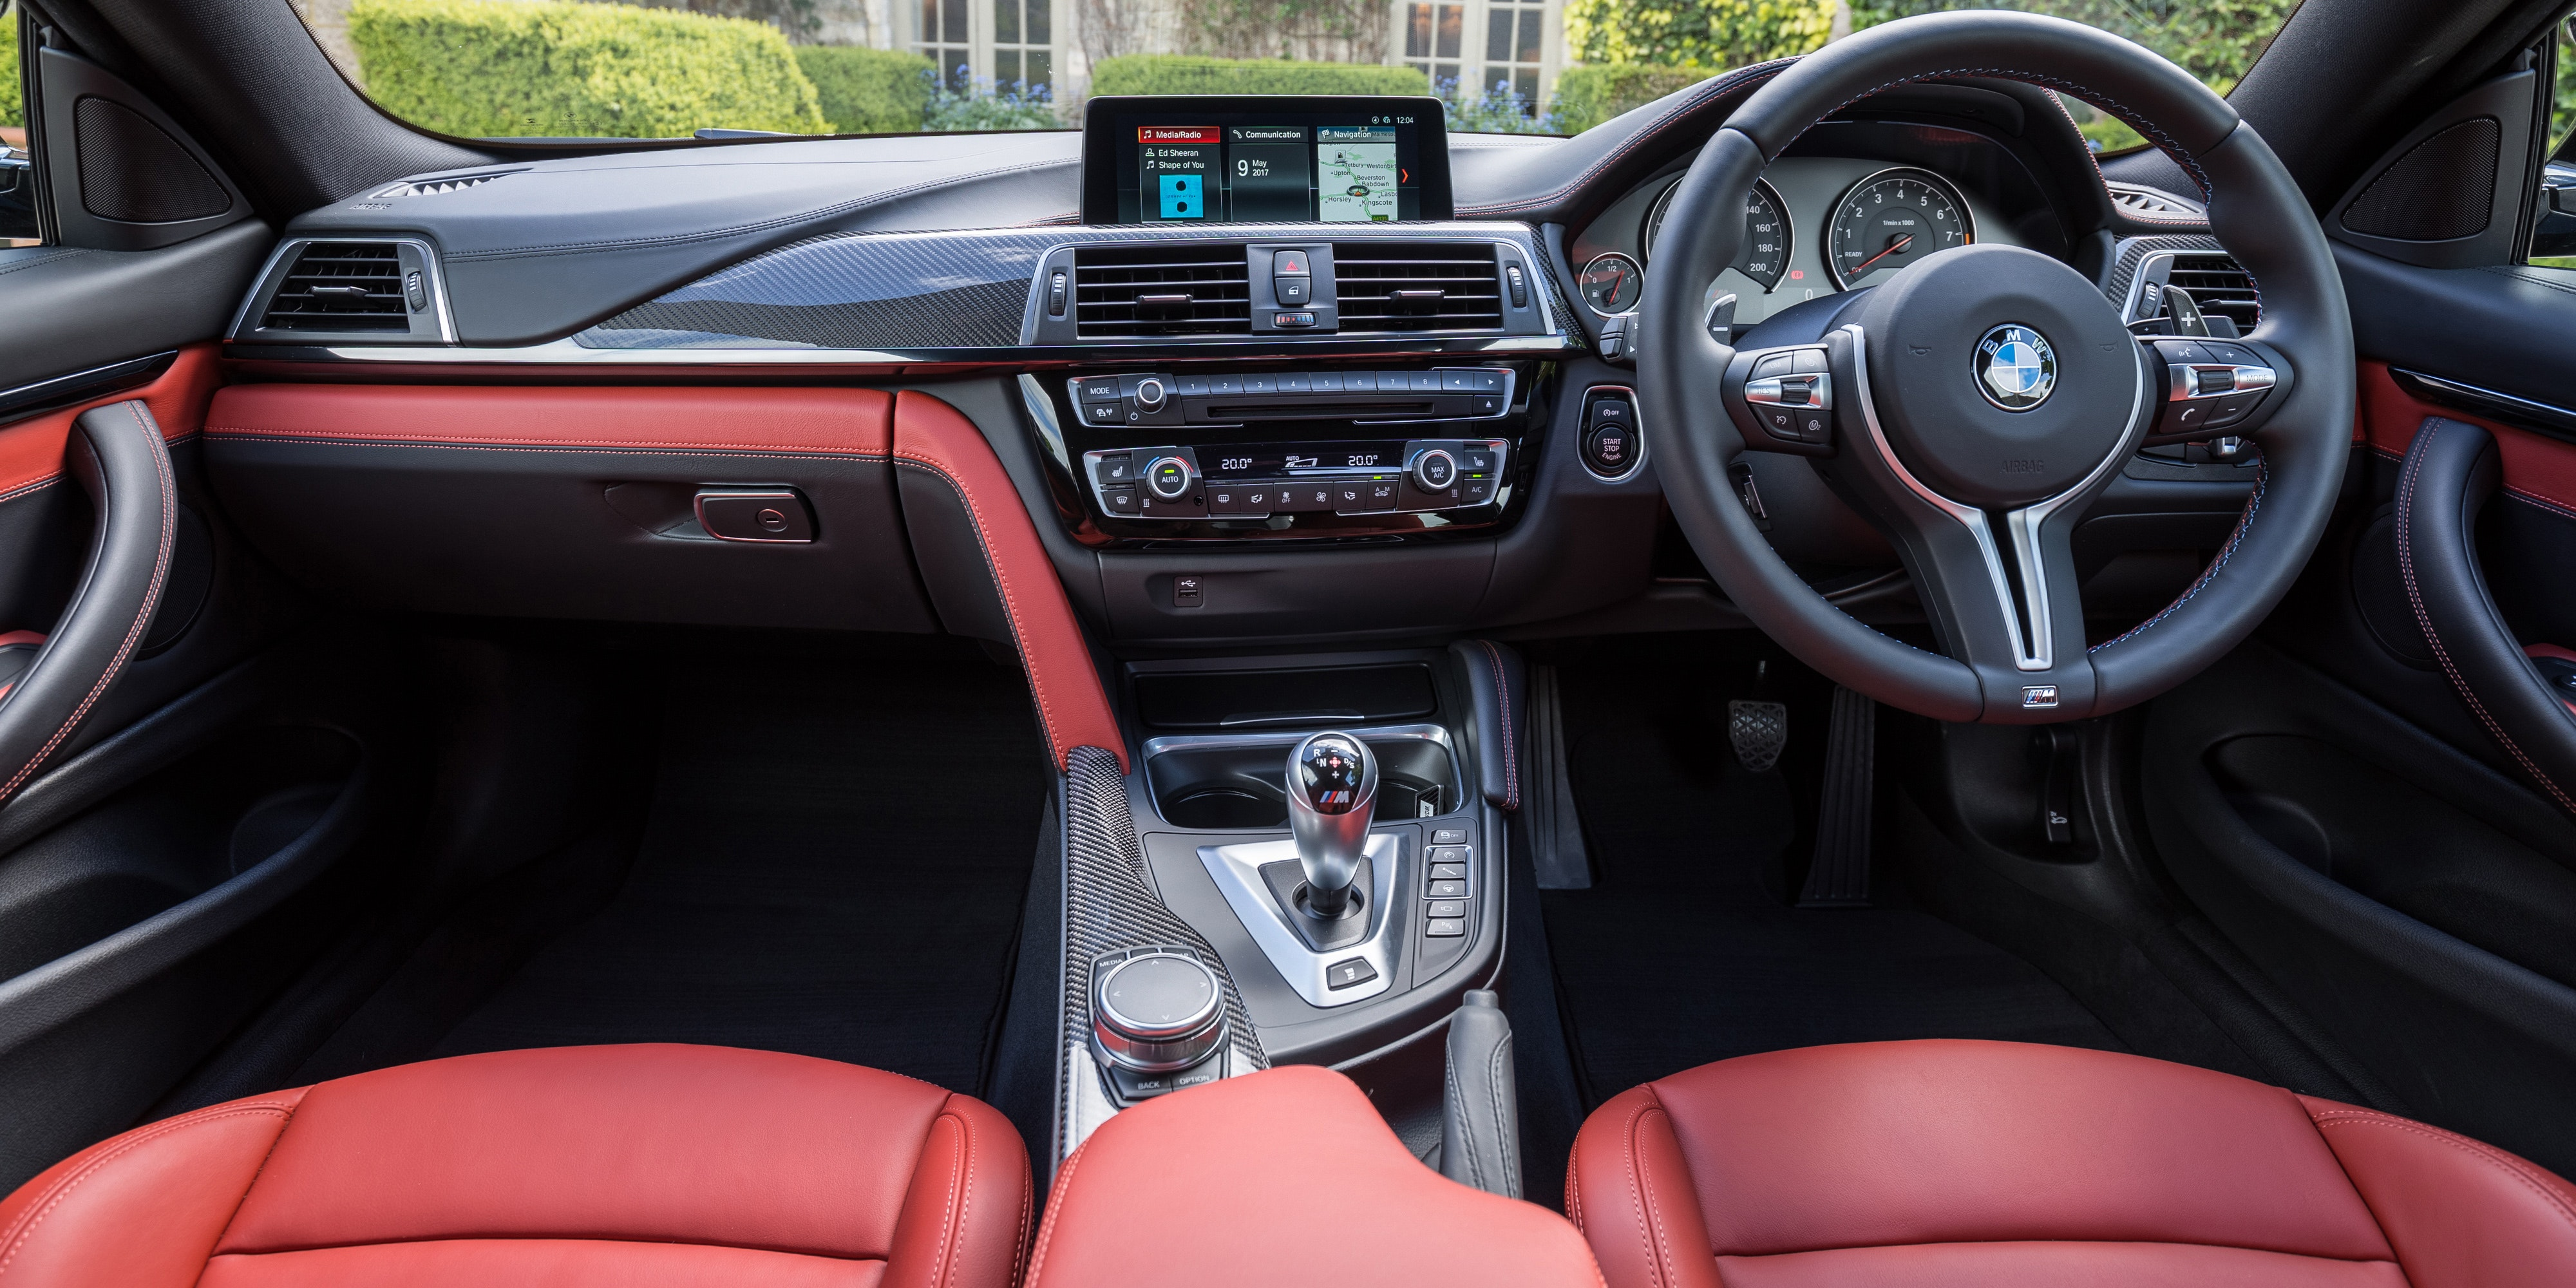 BMW M4 Interior And Infotainment | Carwow